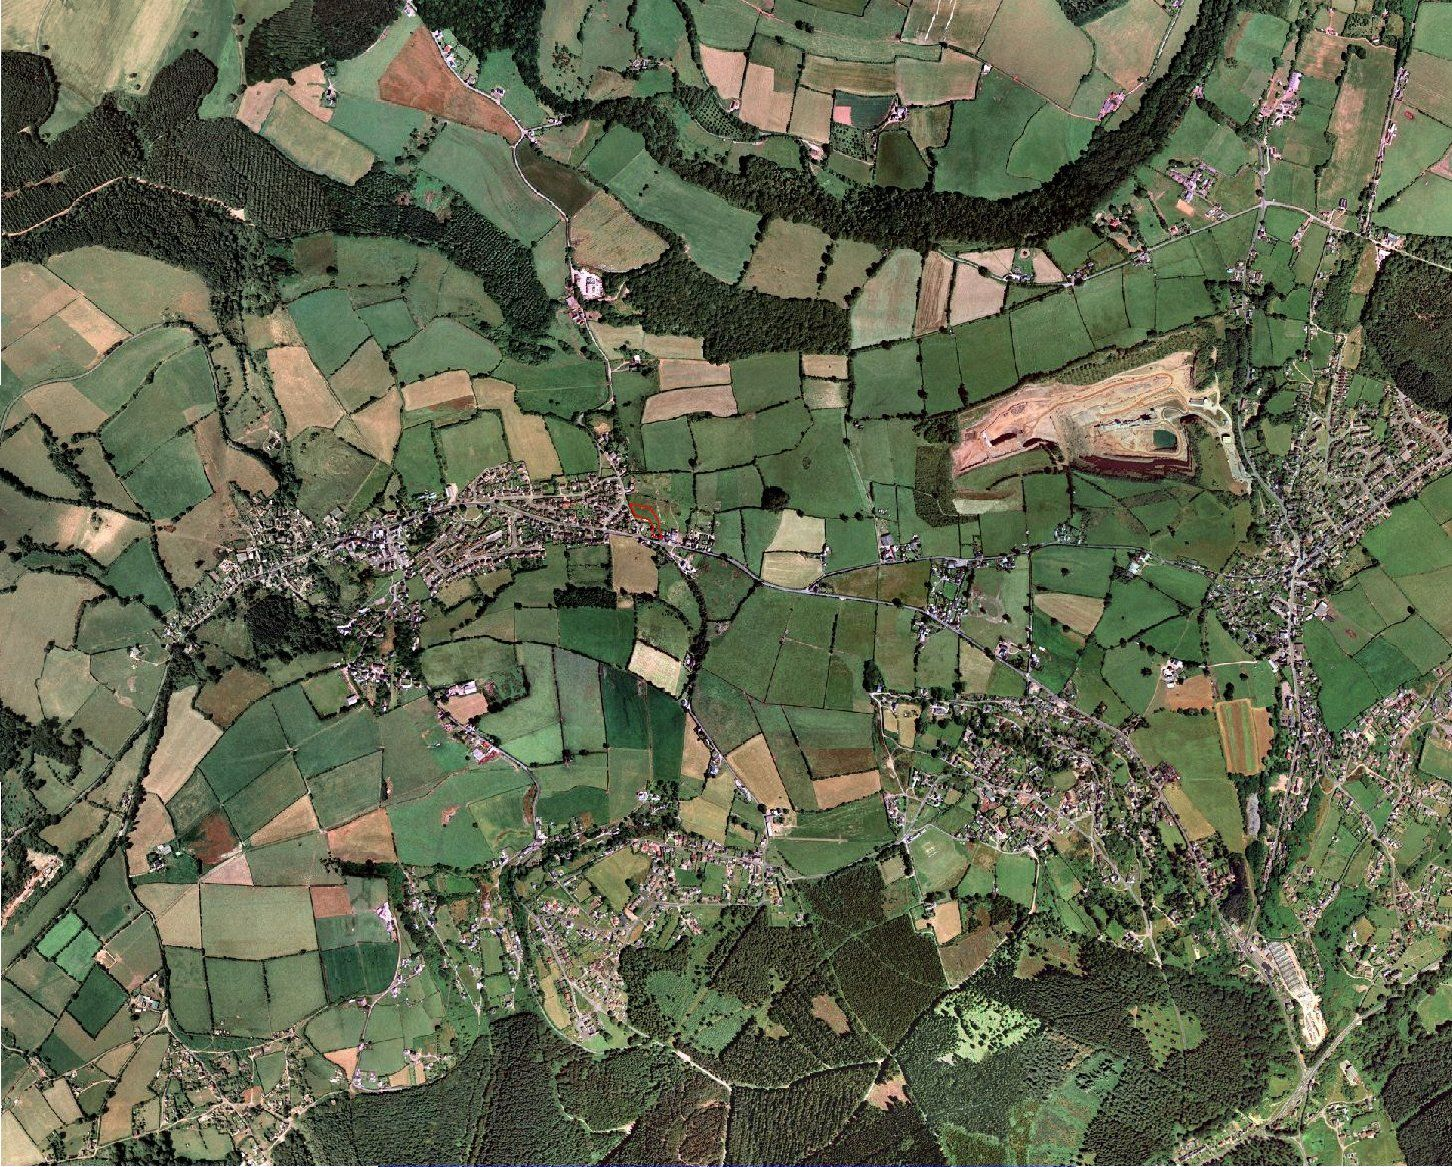 Aerial Maps   Oakleigh Farm House   Panoramic   Pinterest   Farm     Aerial Maps   Oakleigh Farm House